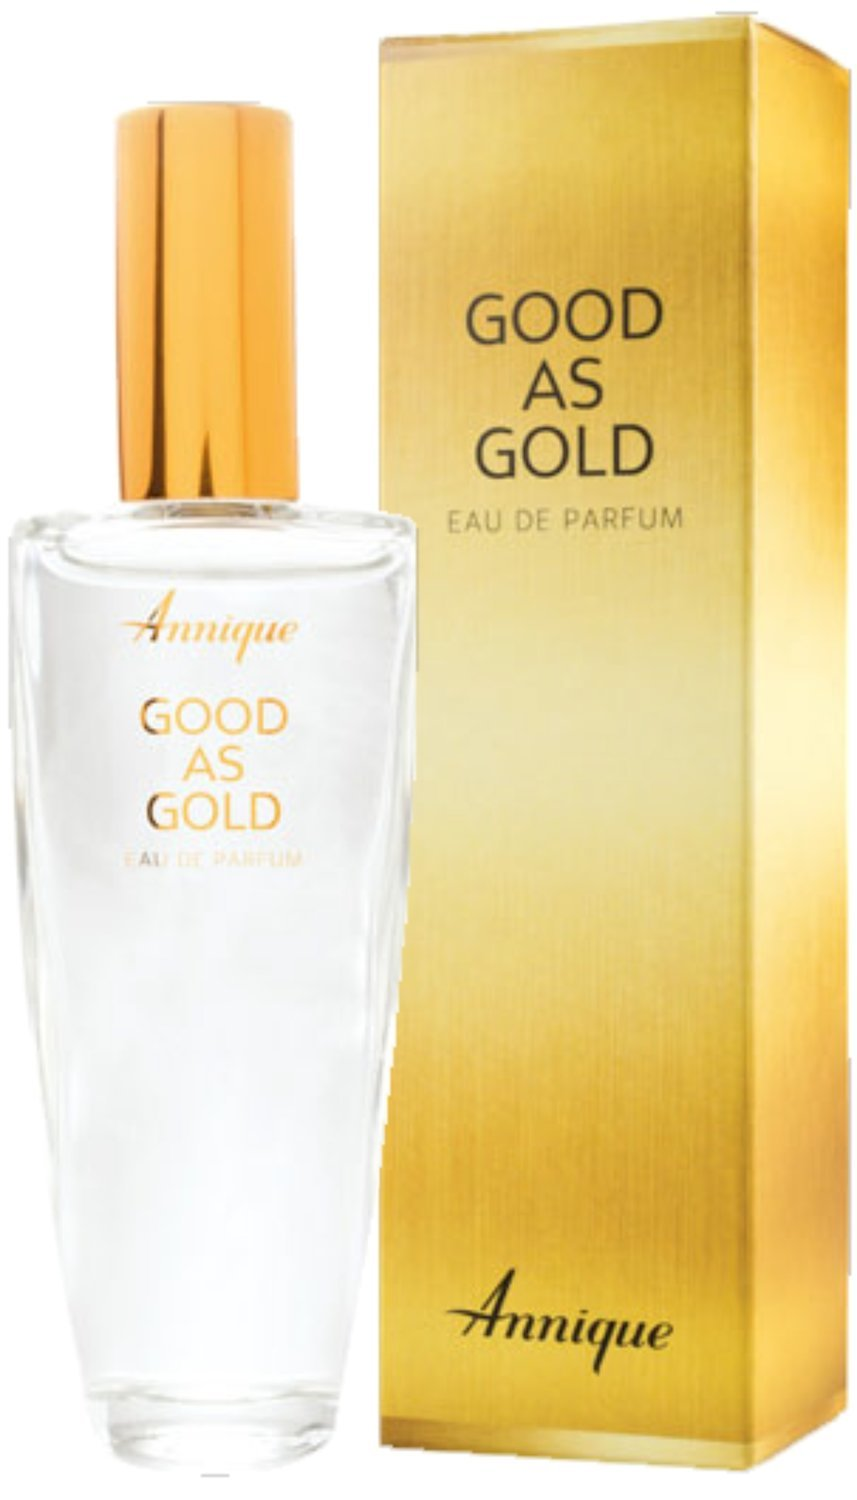 Annique Good as Gold 30ml EDP Limited Edition for HER